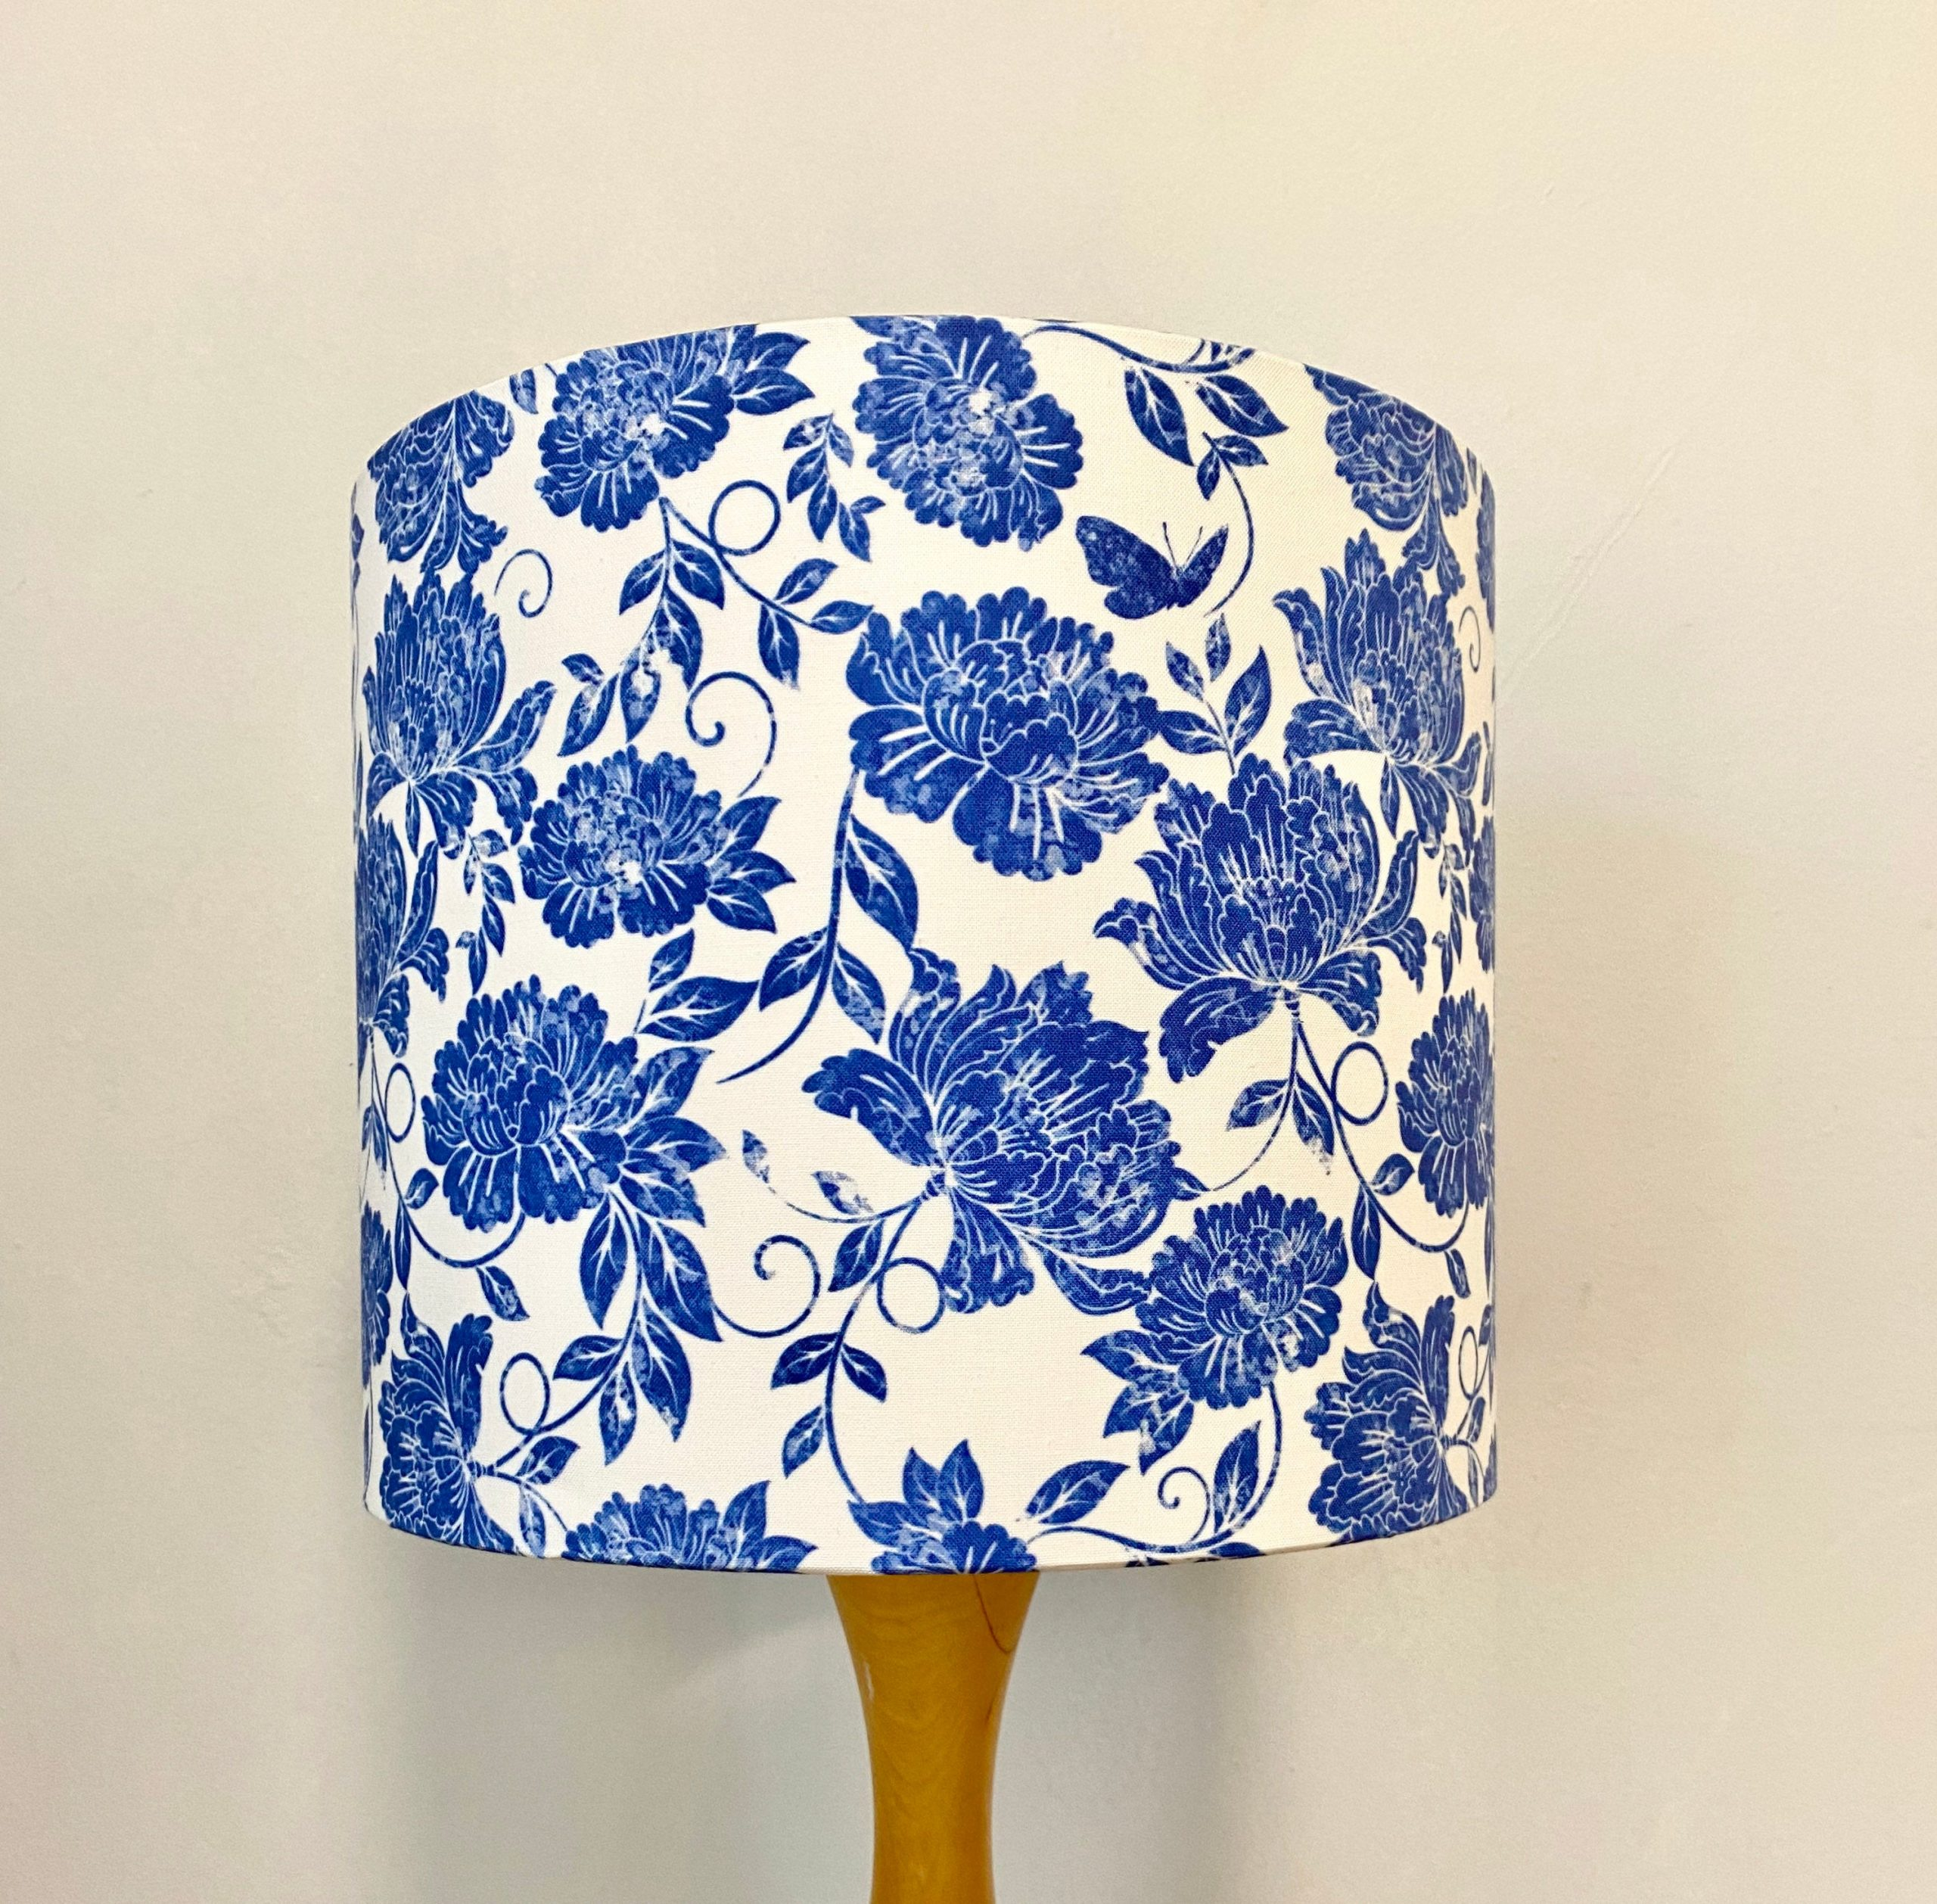 Summer Flowers White And Blue Lampshade Hello Boho Handcrafted Lampshades Homewares Home Decor